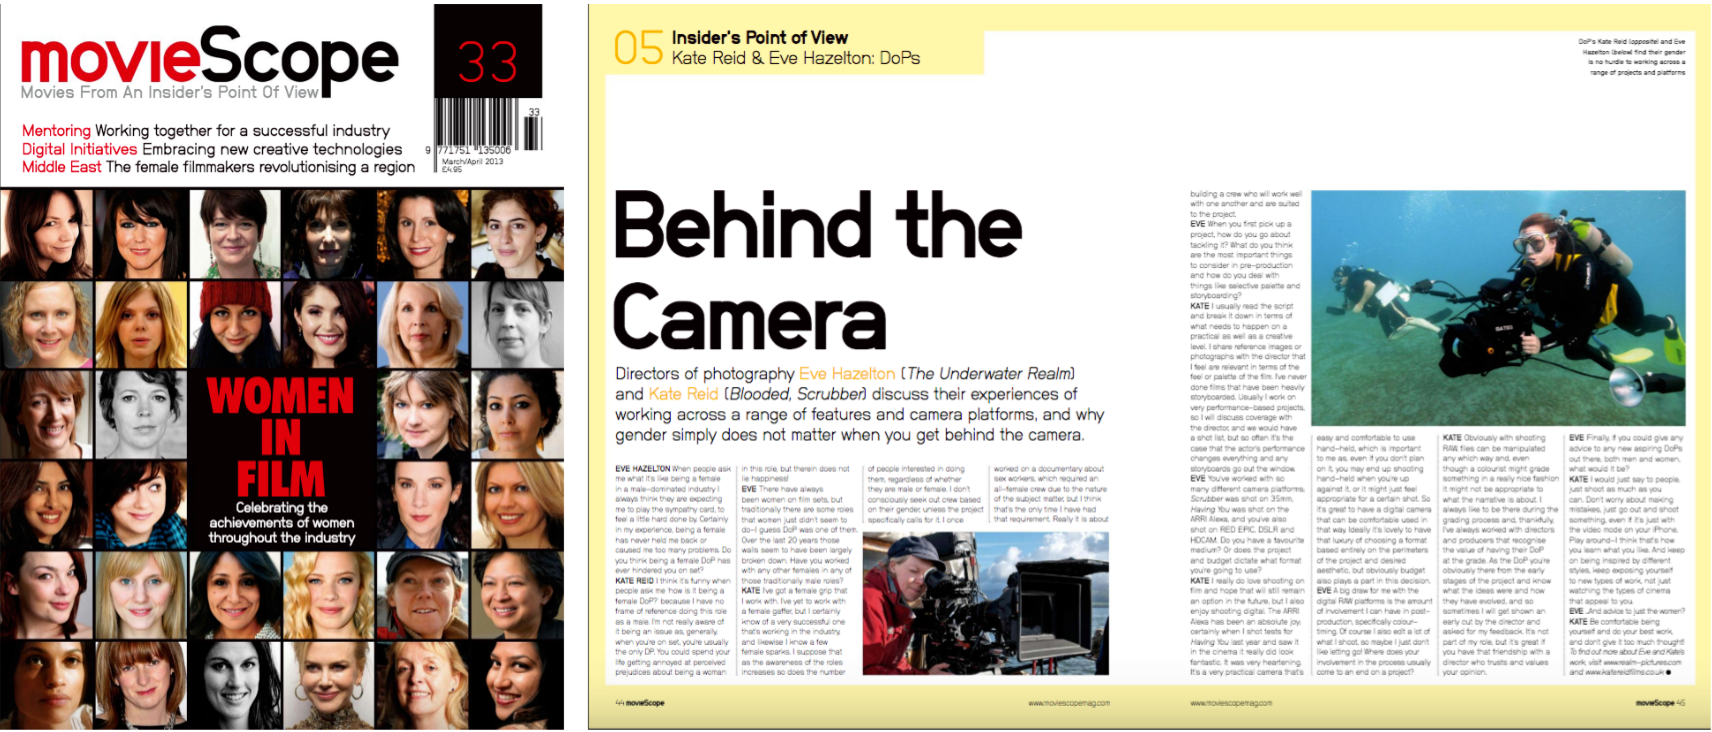 Featured in  MovieScope magazine's  WOMAN IN FILM issue discussing cinematography (March / April 2013)